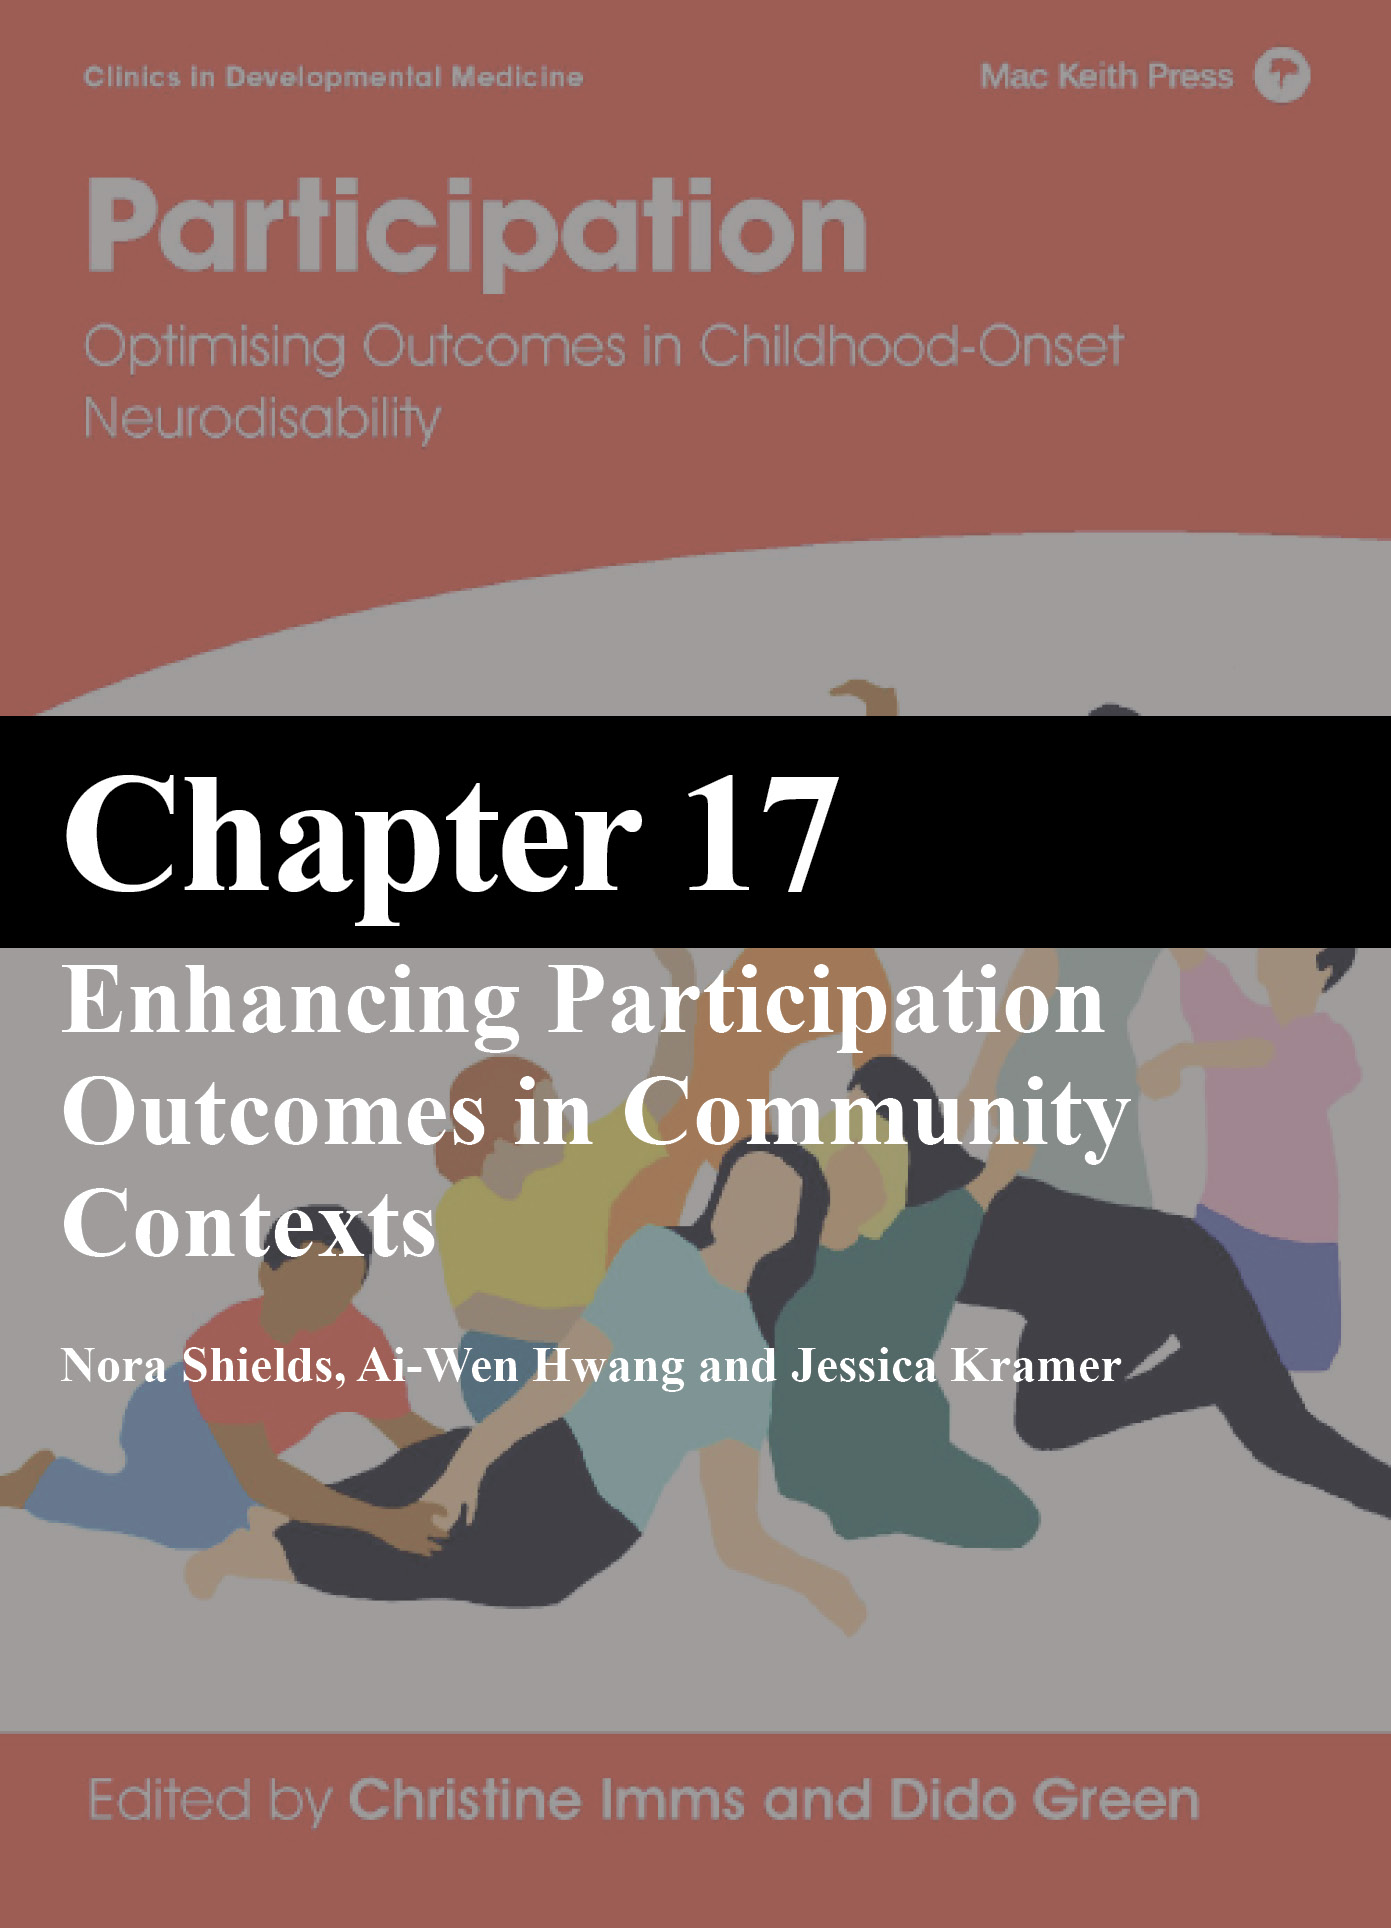 Participation Chapter 17 Imms Green